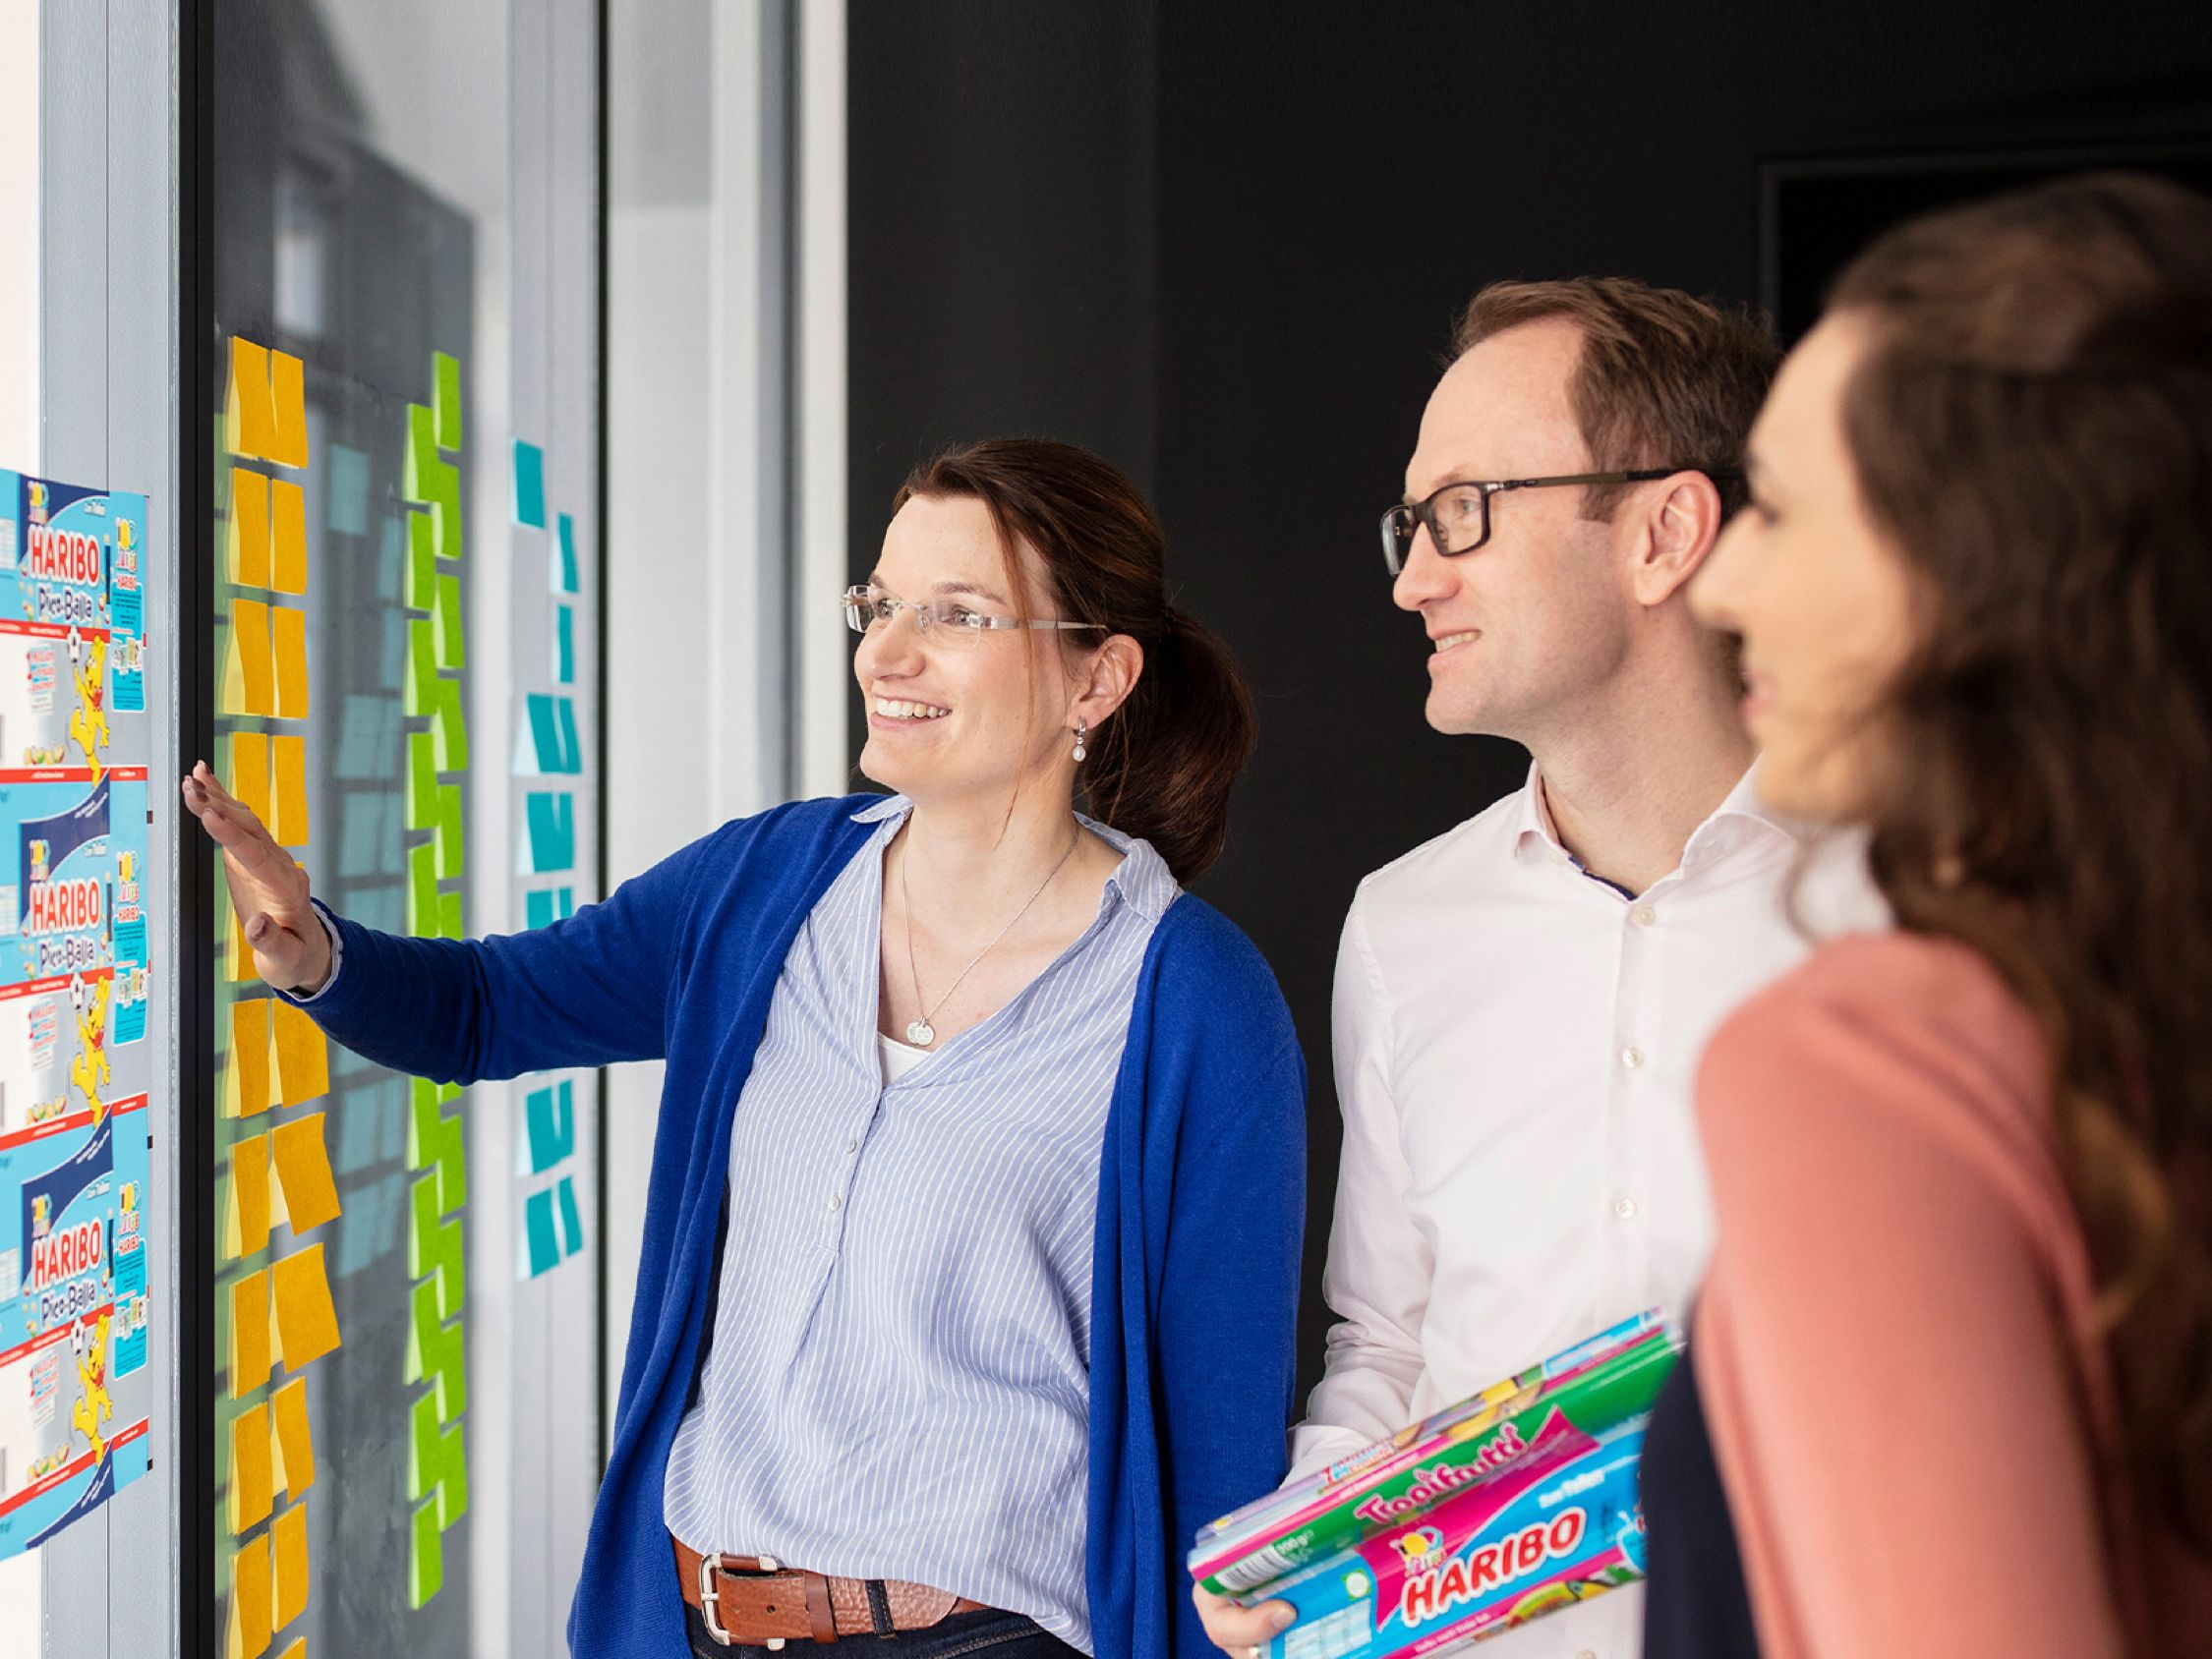 HARIBO employees at a wall with colourful Post-its